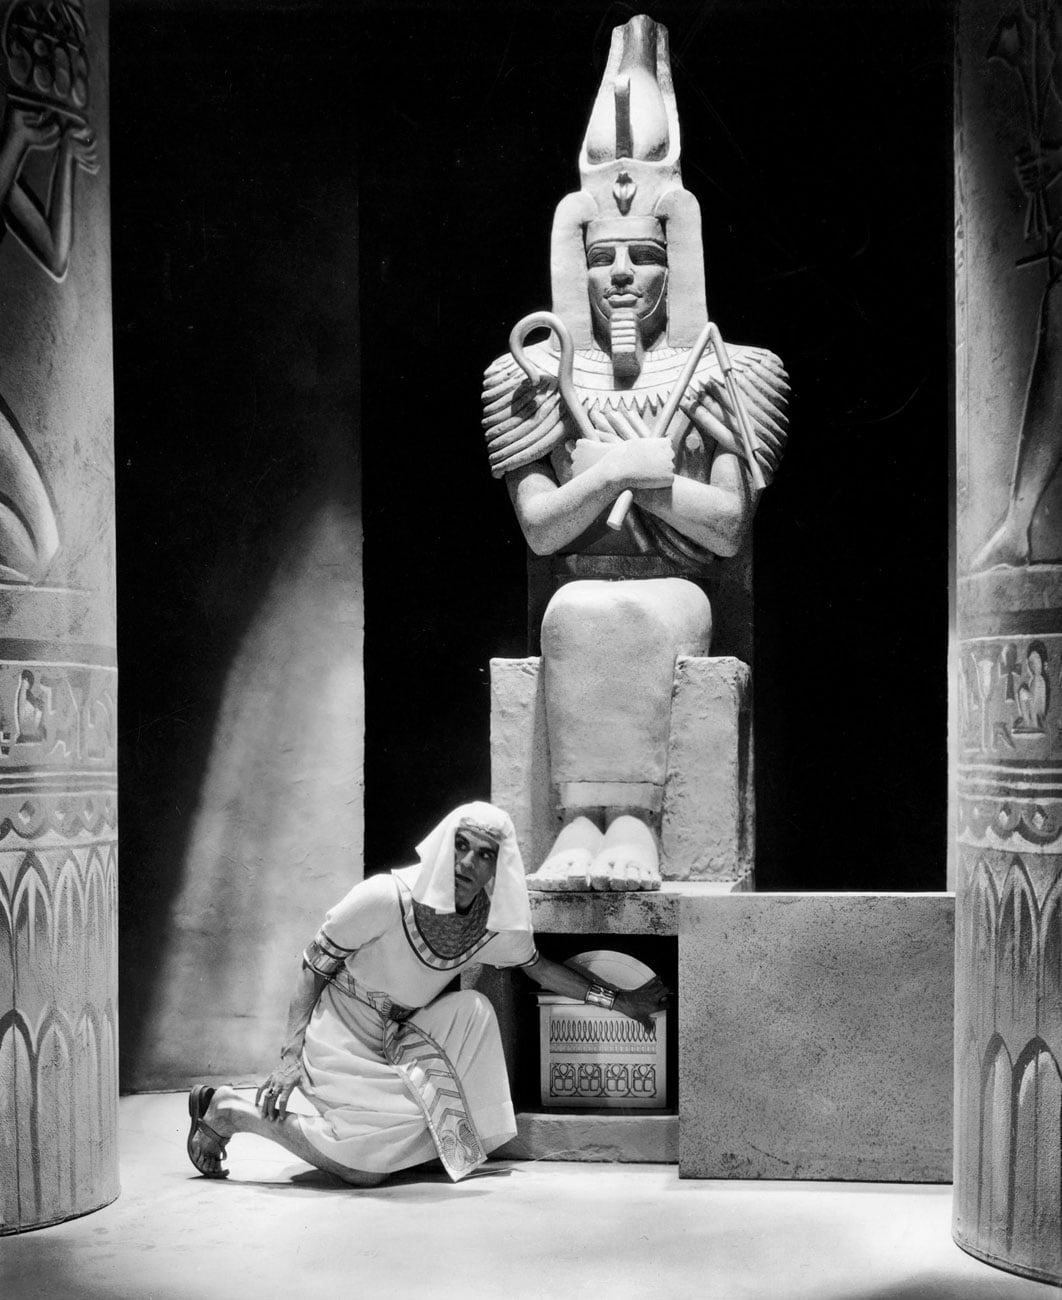 a historical movie review of the mummy A historical review of the film, the mummy originally written for a twelfth grade ancient history class.